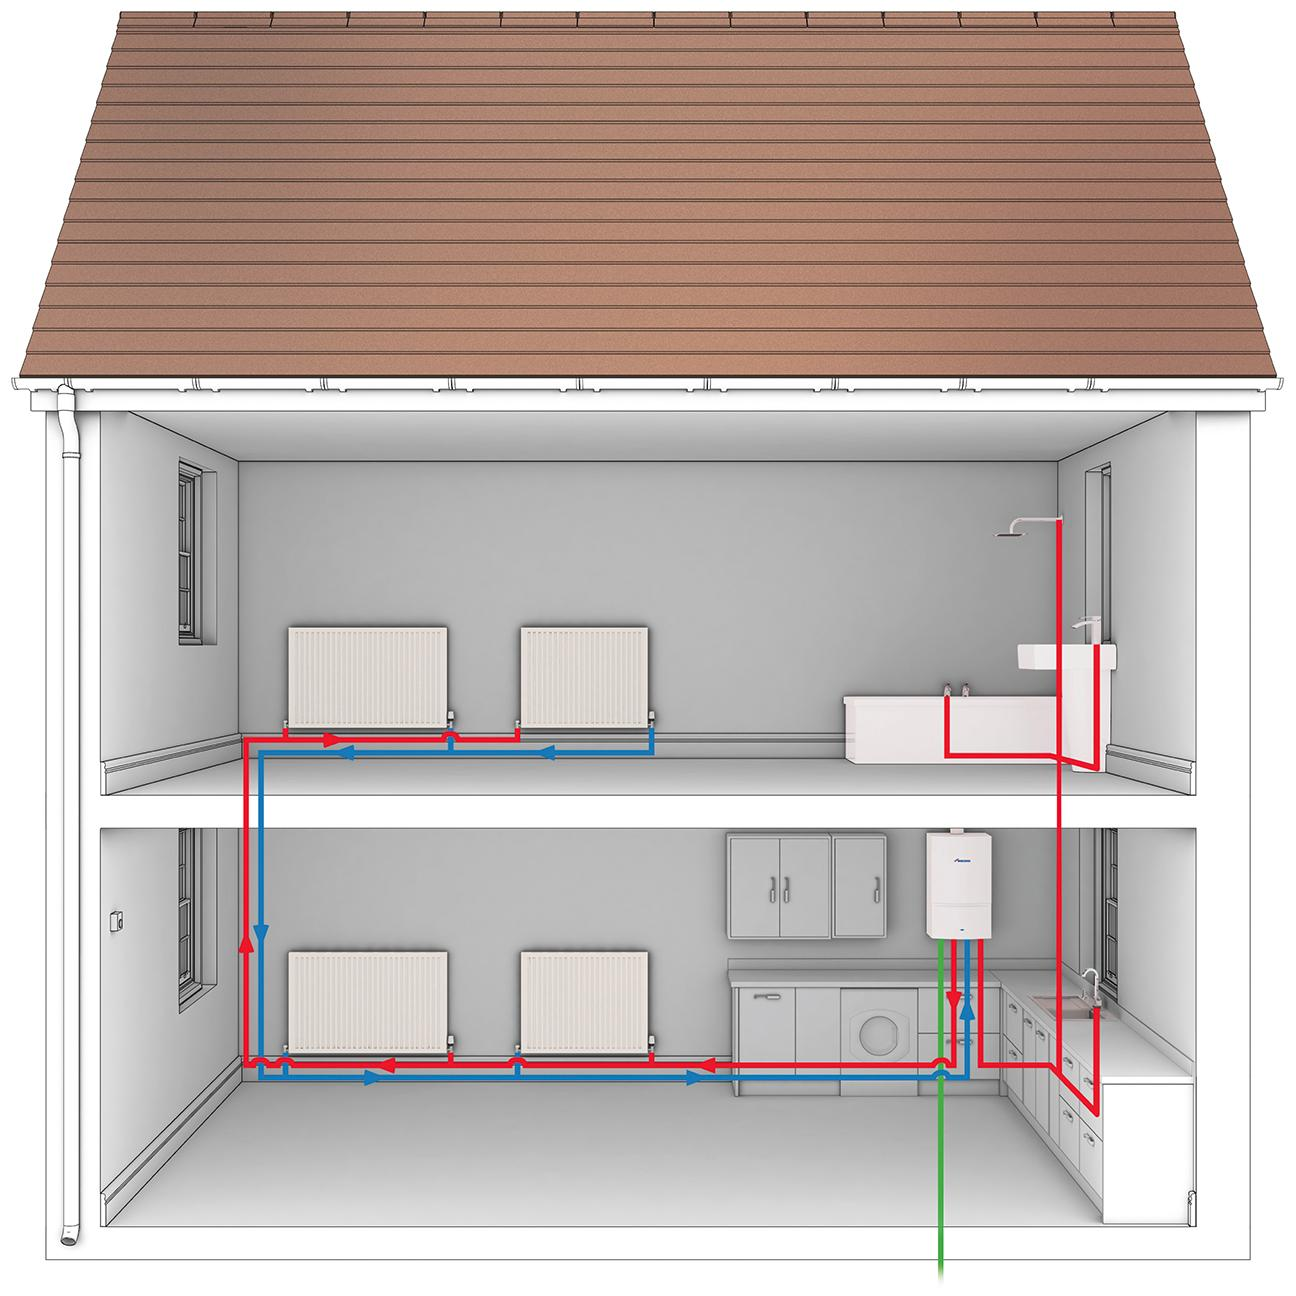 Combi Boiler Central Heating Diagram Wiring Images